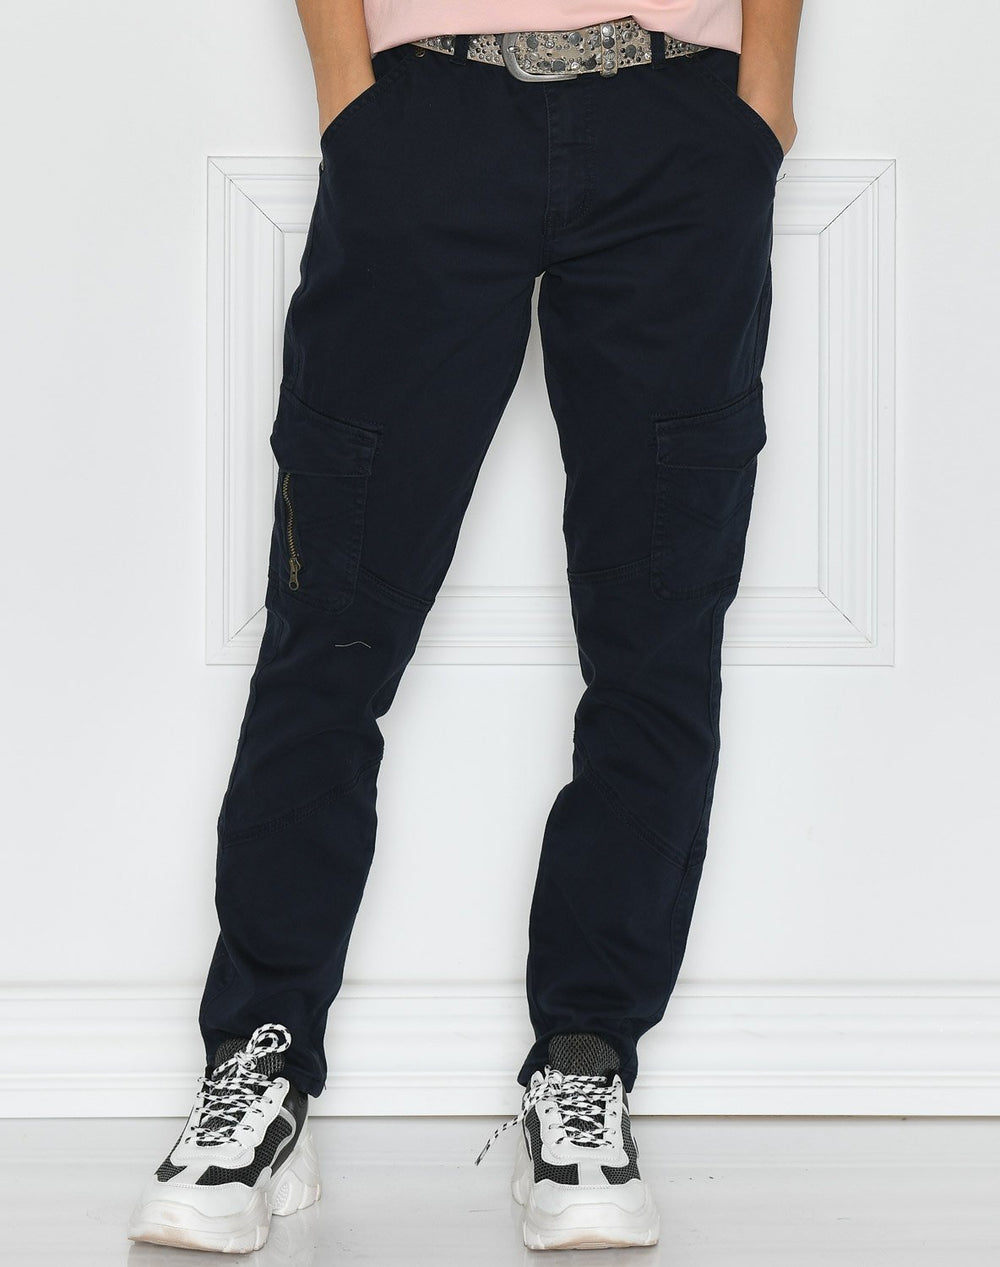 Culture CUabir cargo pants 7/8 salute wash - Online-Mode